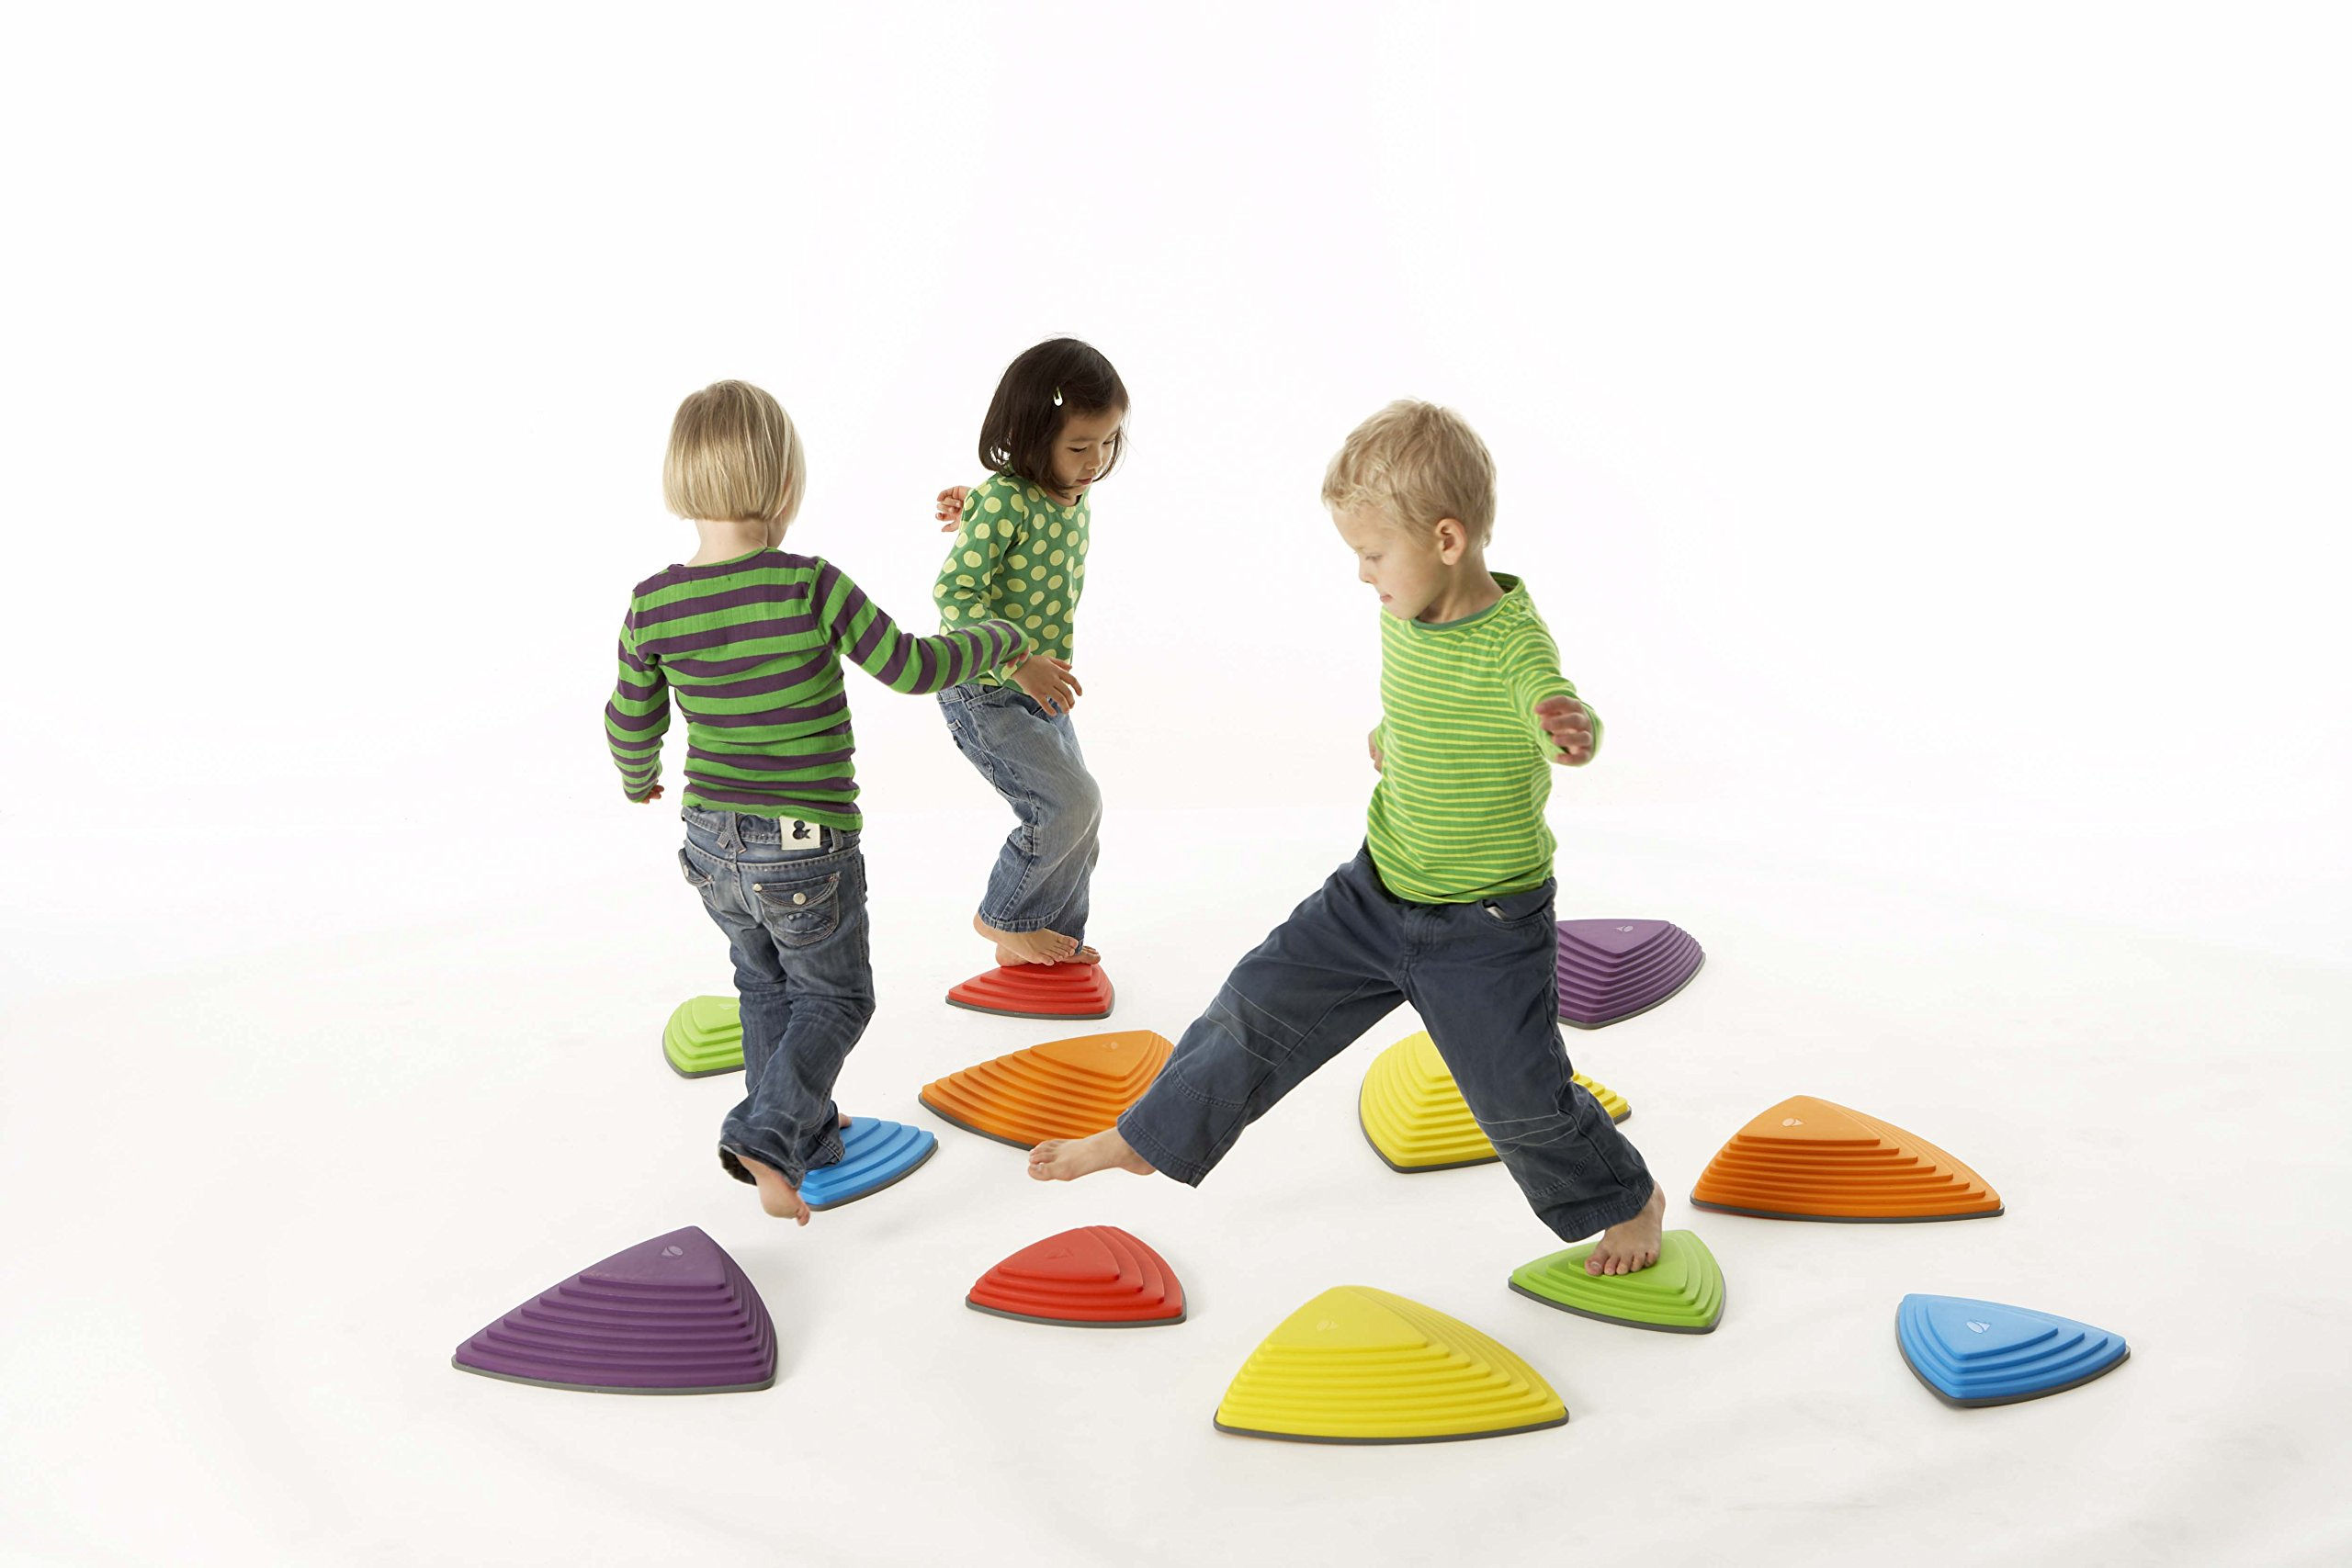 Toys For Active Toddlers : Best energy burning indoor toys for active kids in